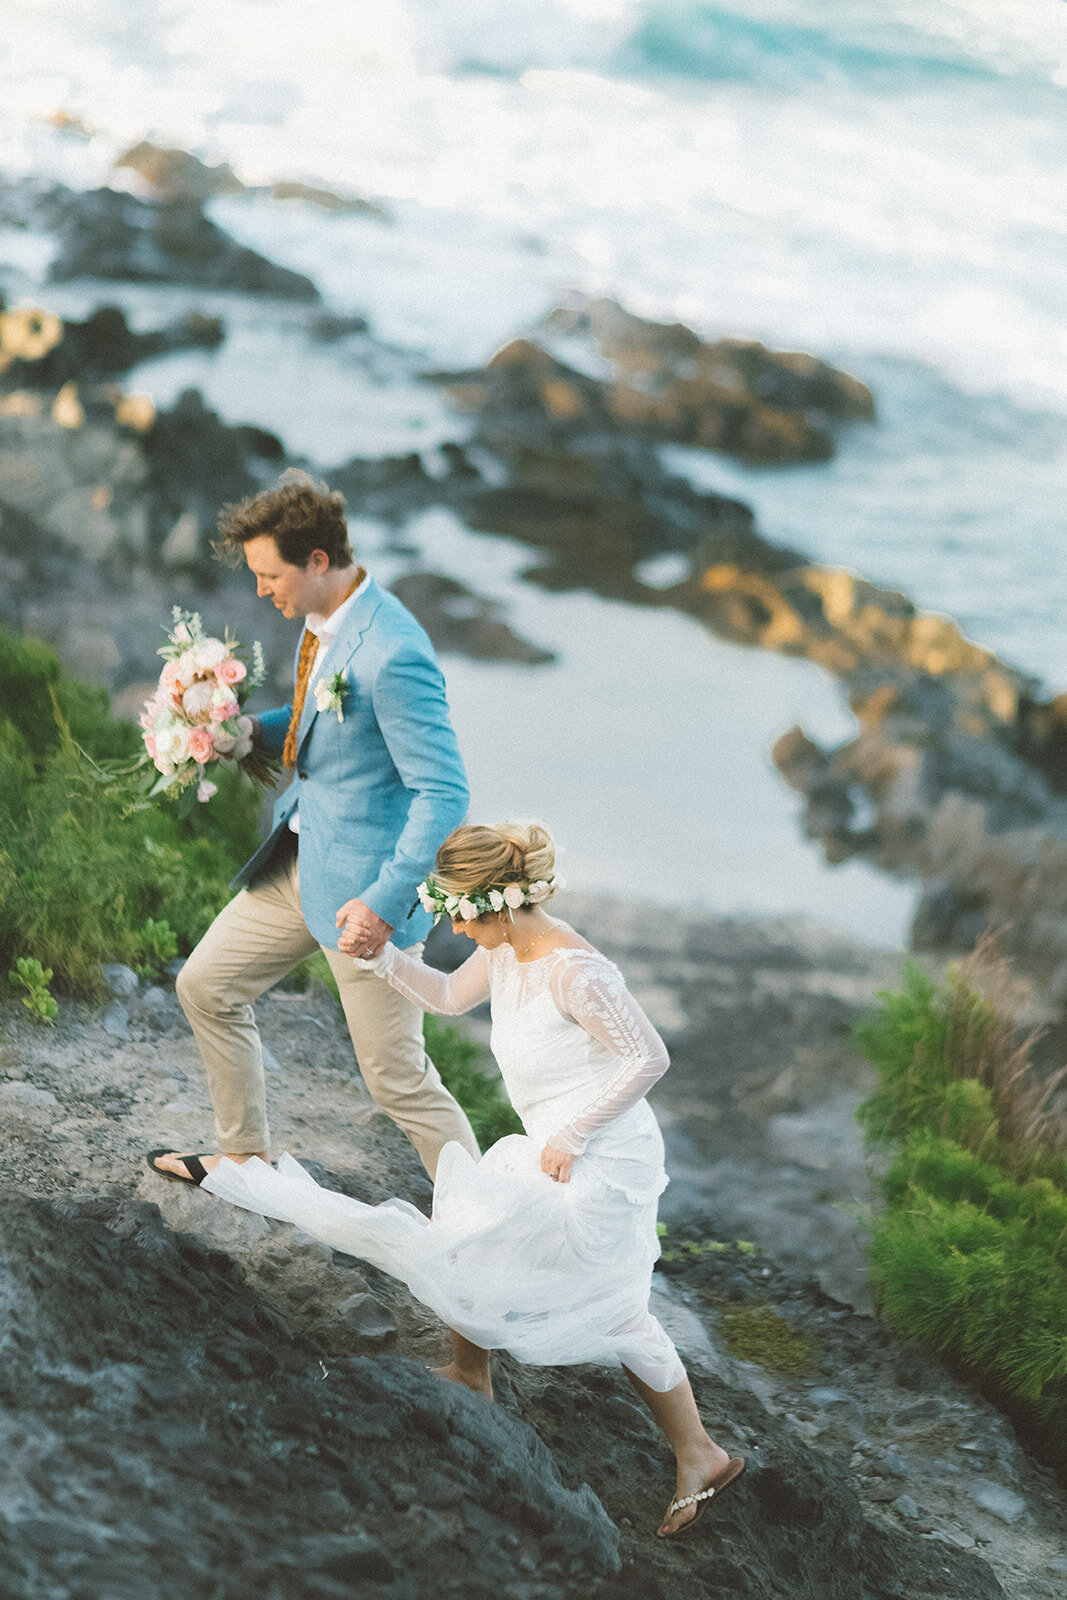 Maui wedding photographer20181126_0013.jpg